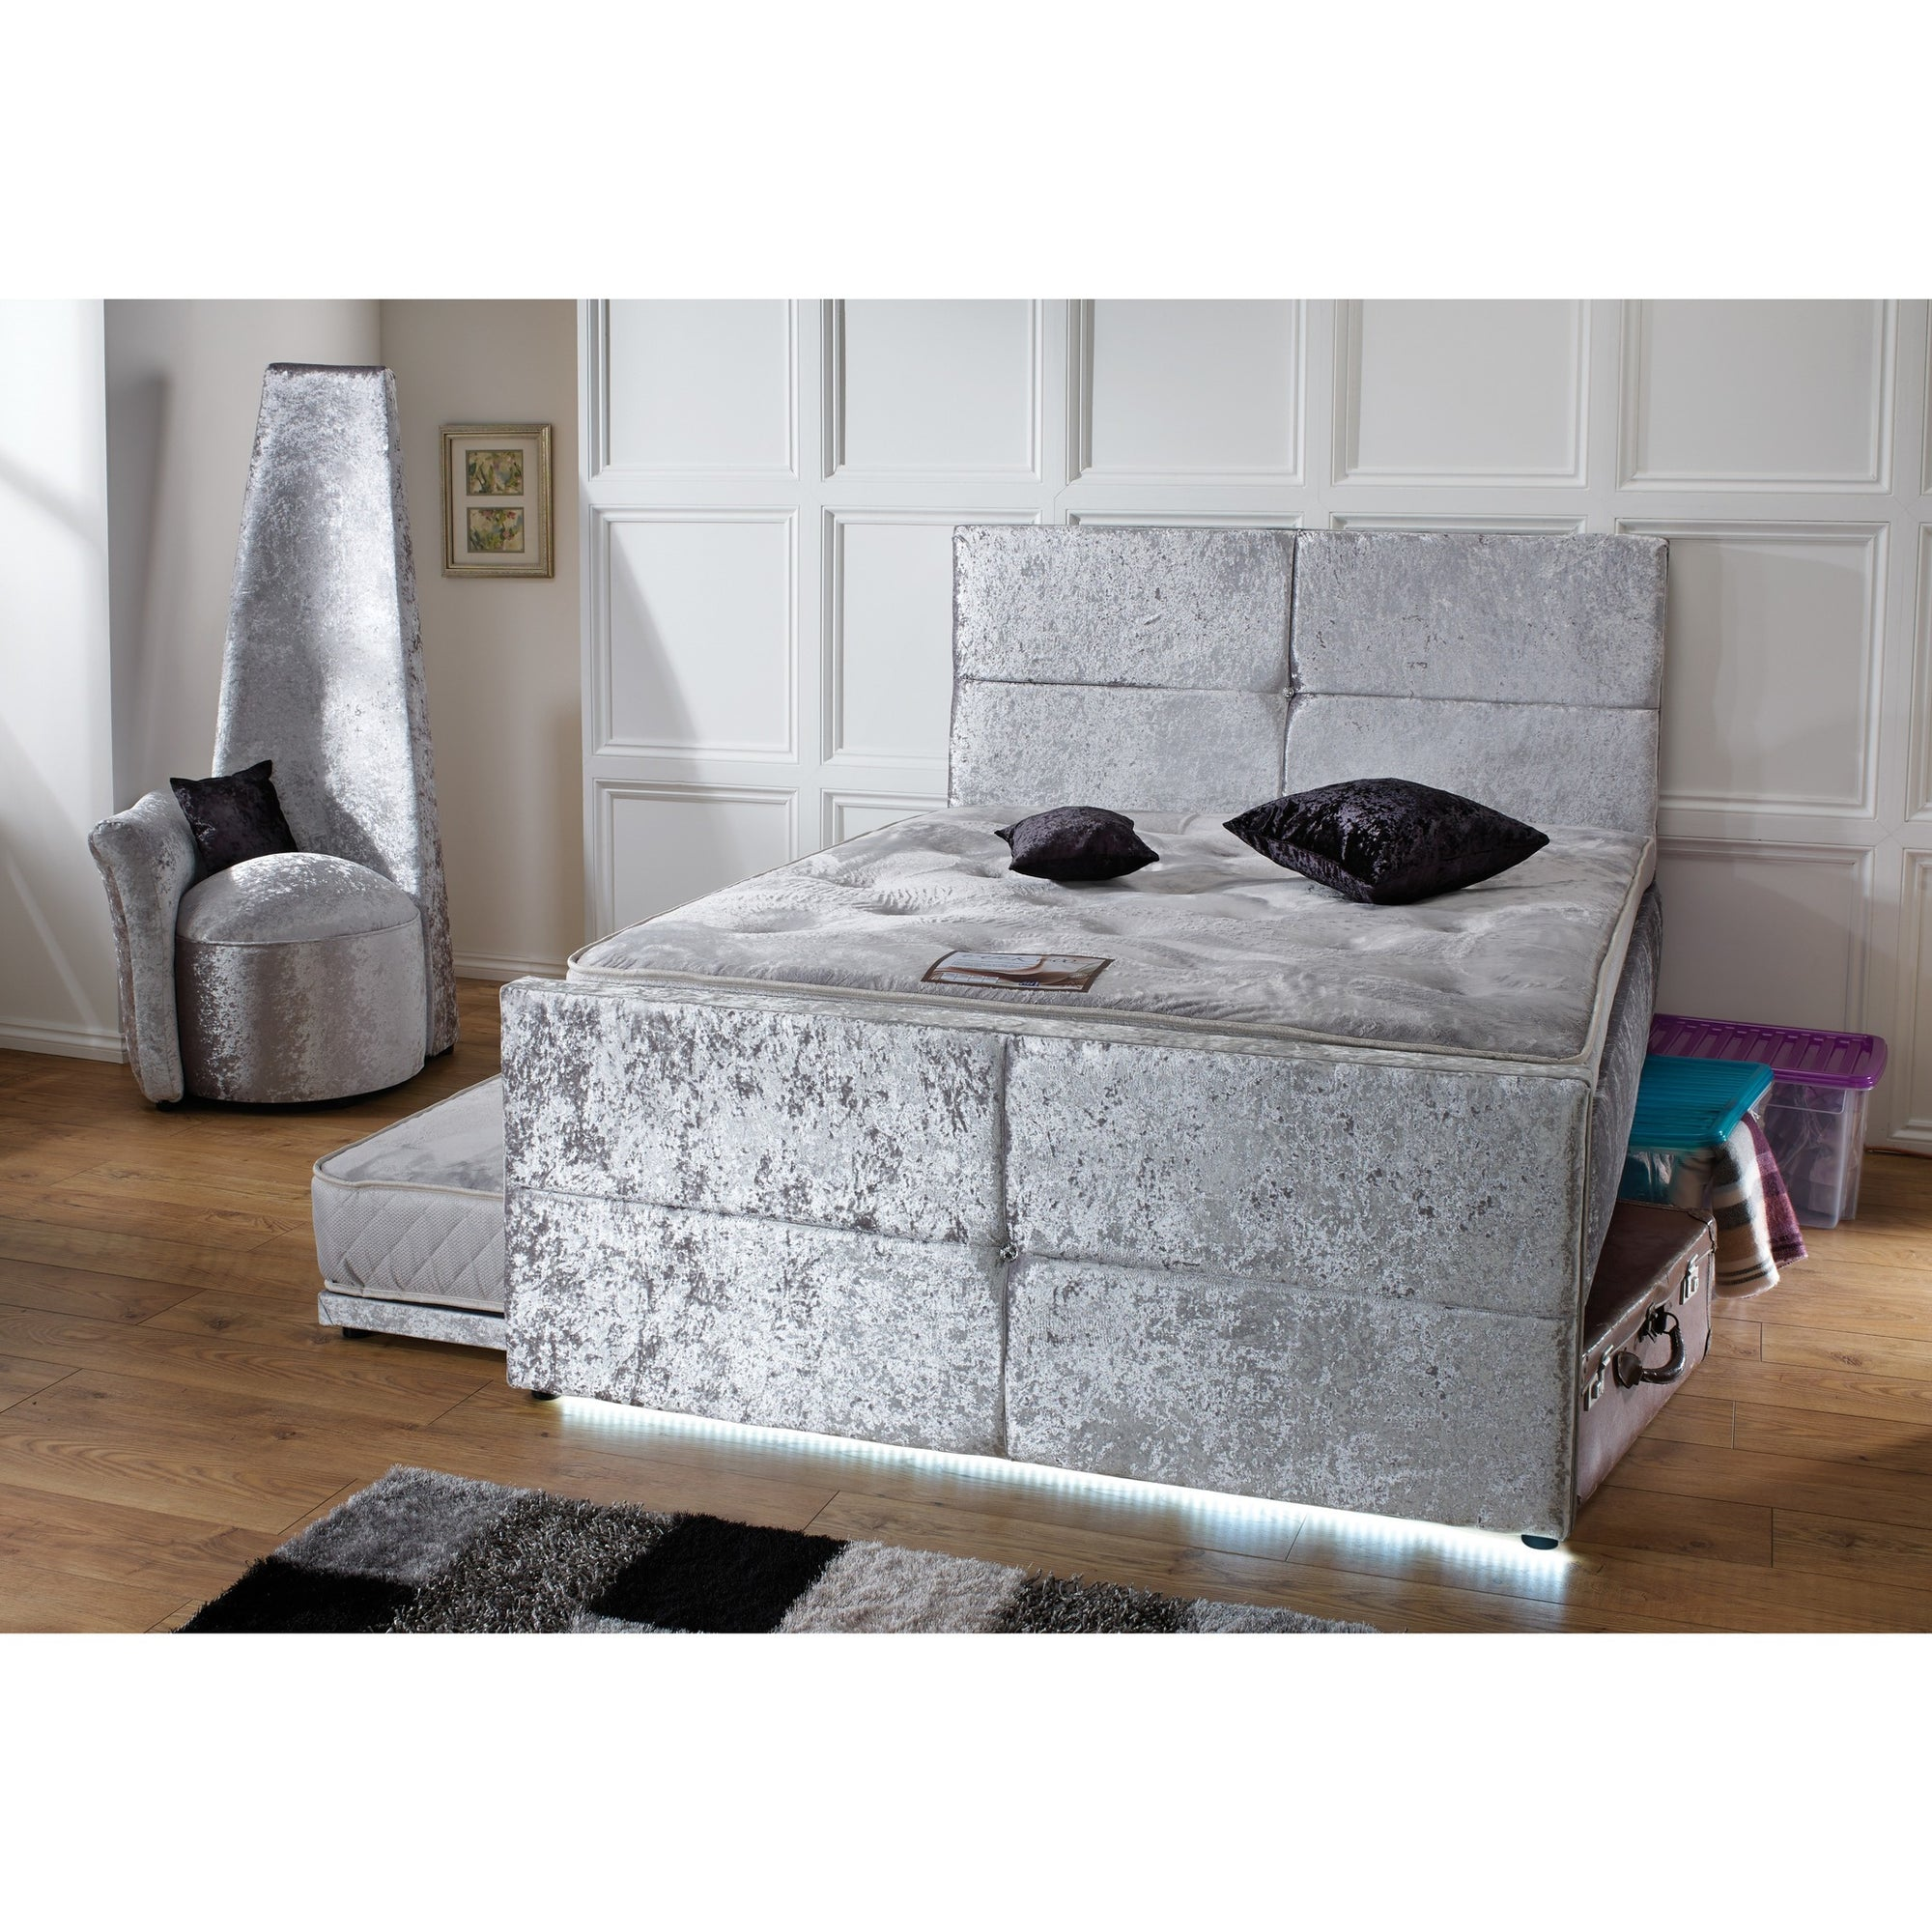 Bespoke Space Saver Bed With 3ft Pull Out Trundle Guest Bed Chic Concept